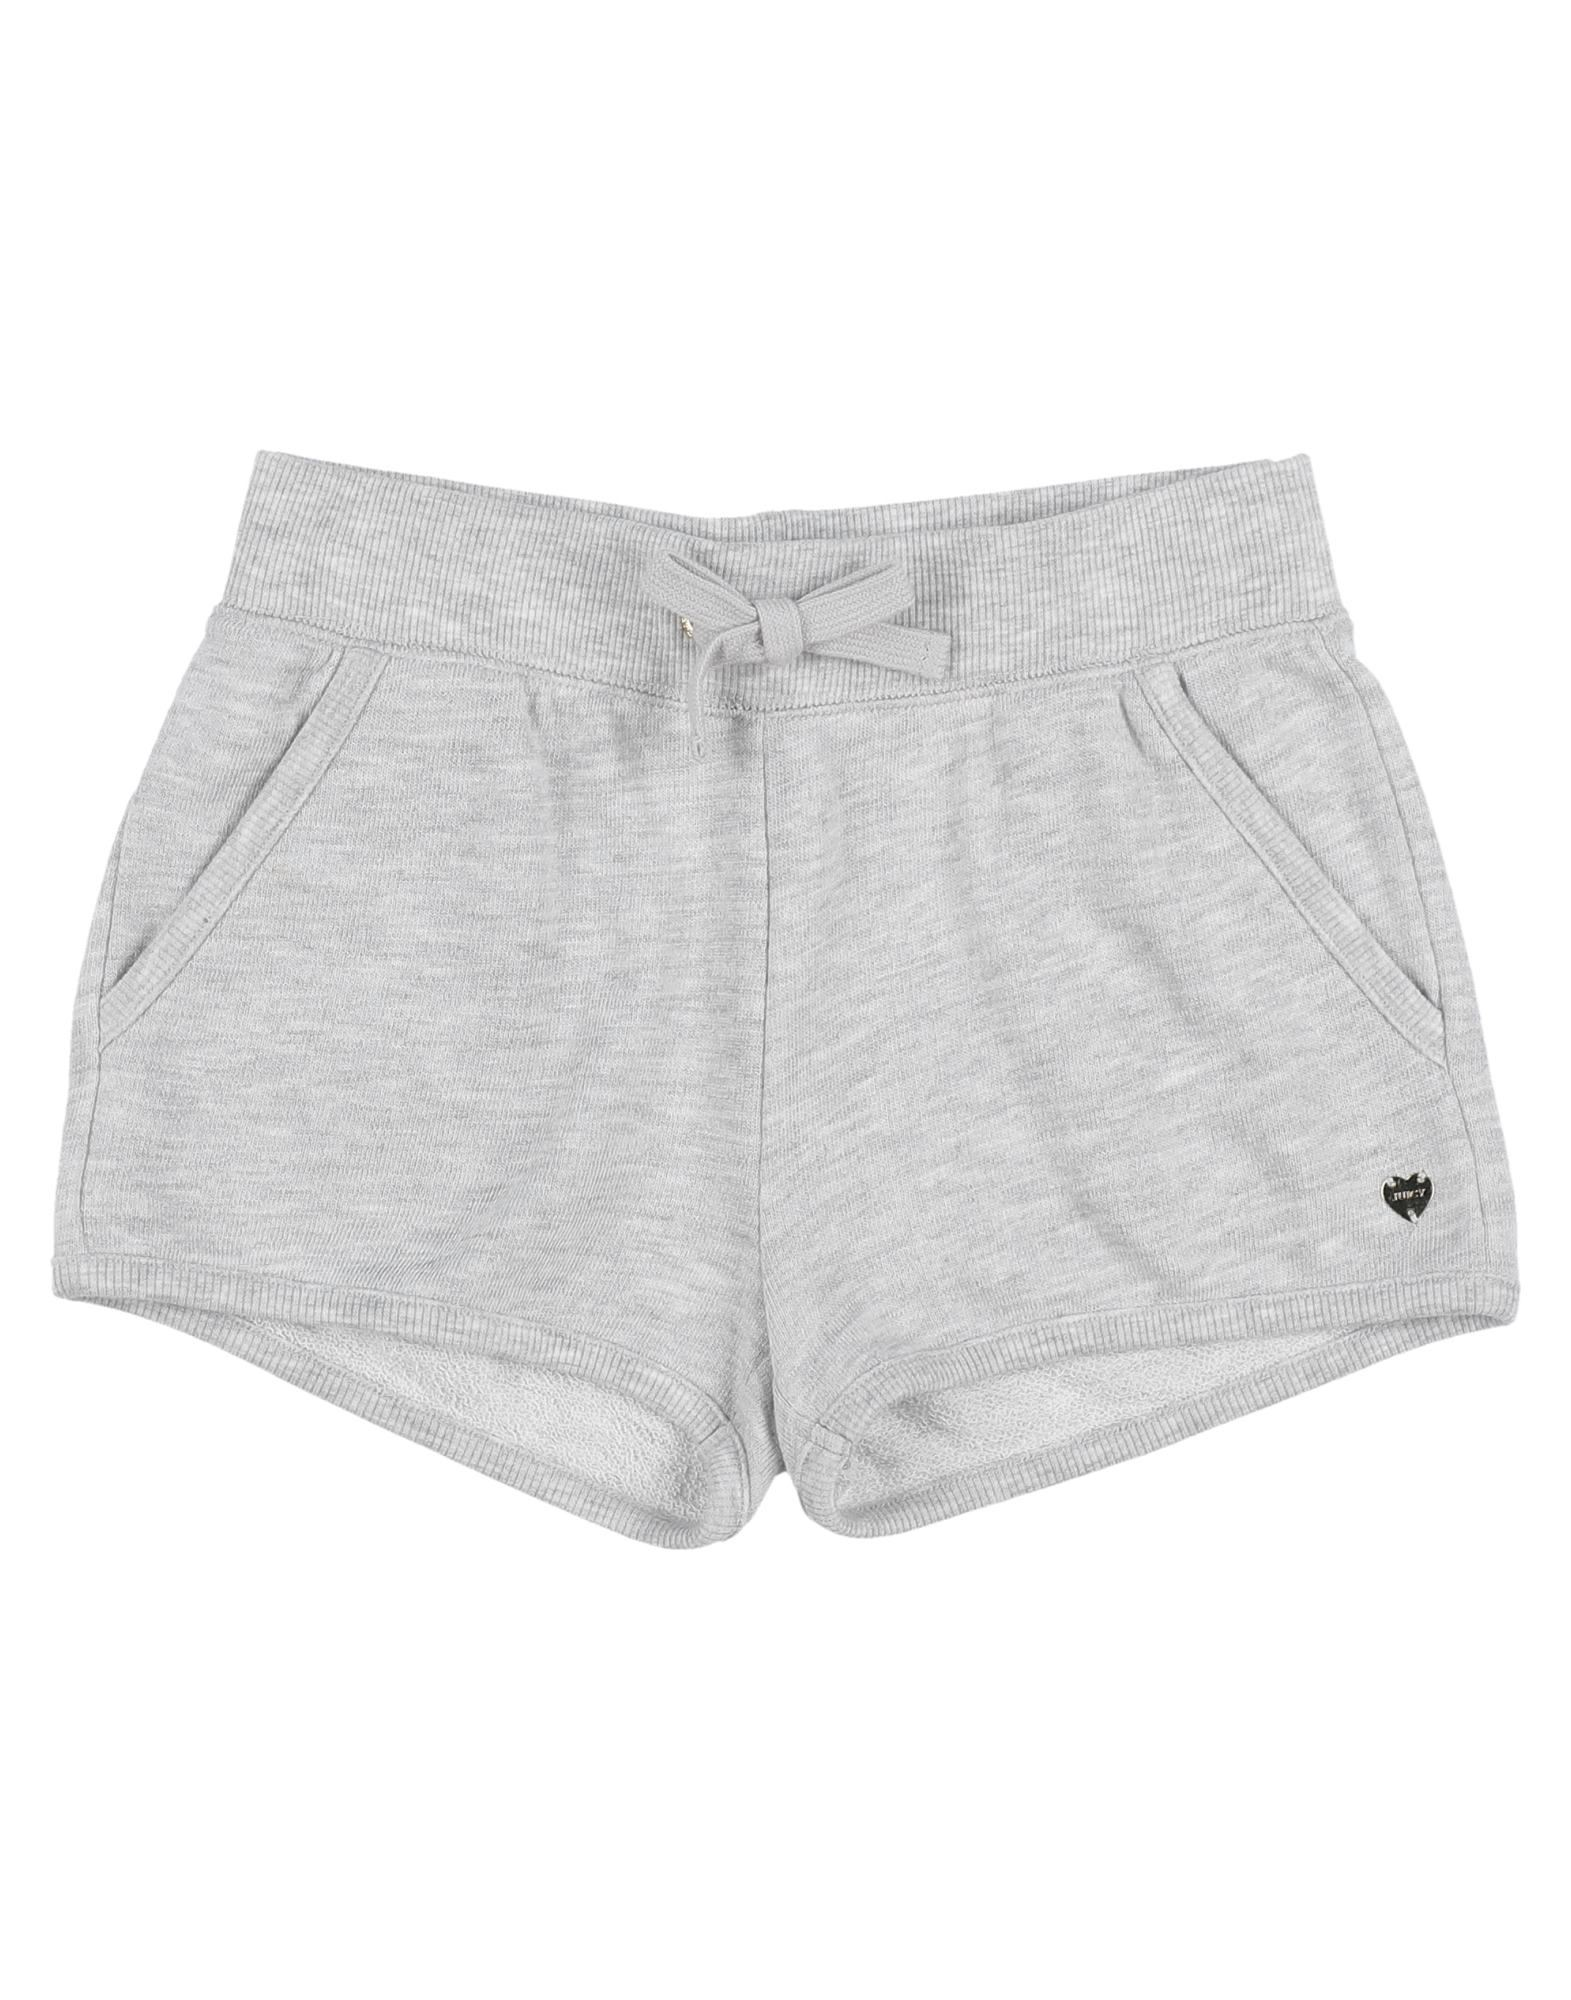 Juicy Couture Kids' Shorts In Light Grey